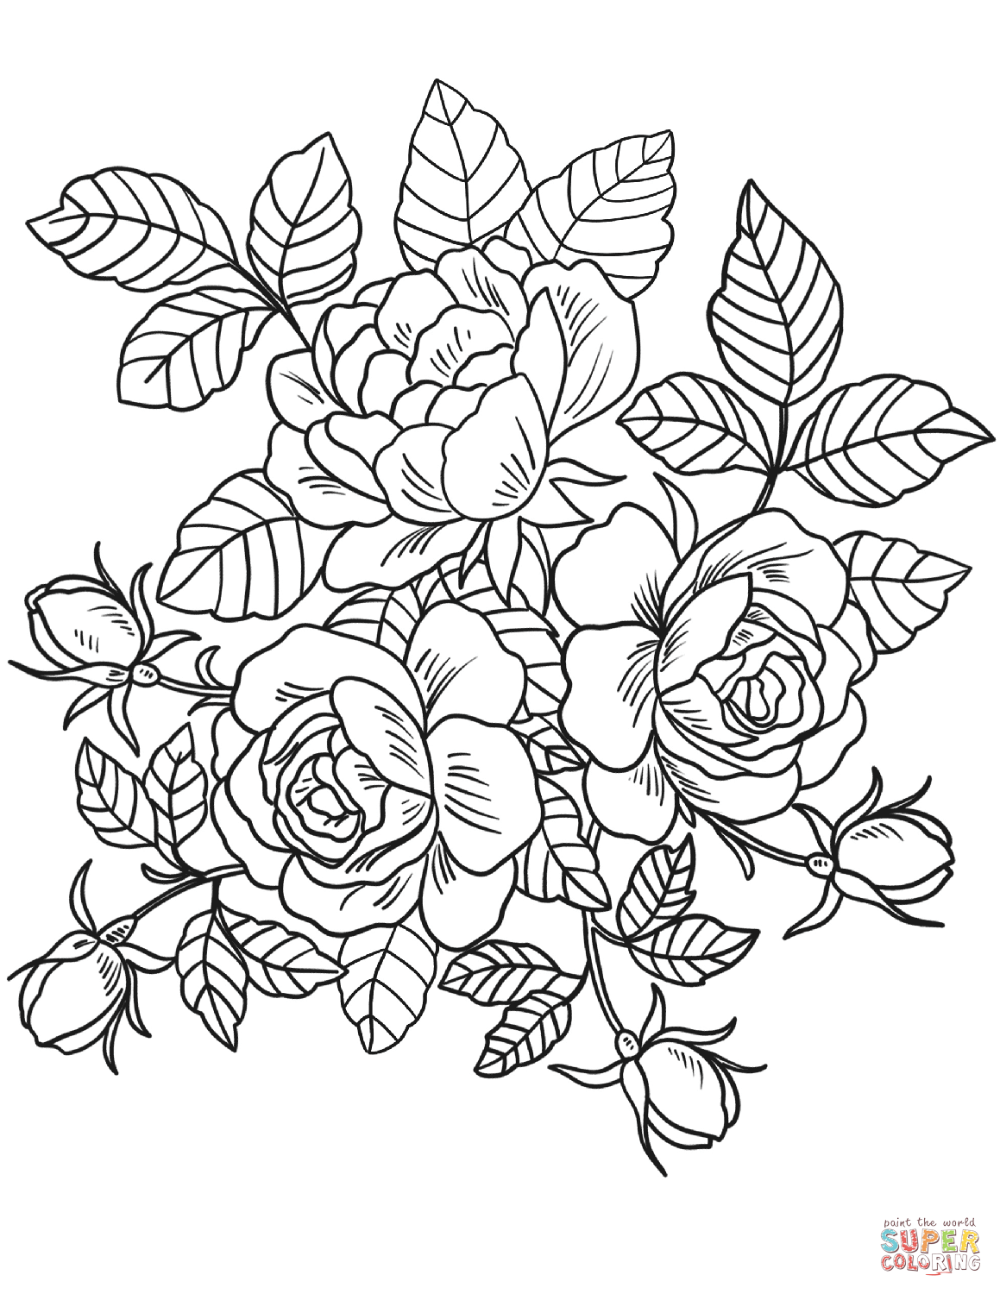 rose mandala coloring pages don39t eat the paste rose windows mandala coloring pages pages mandala coloring rose